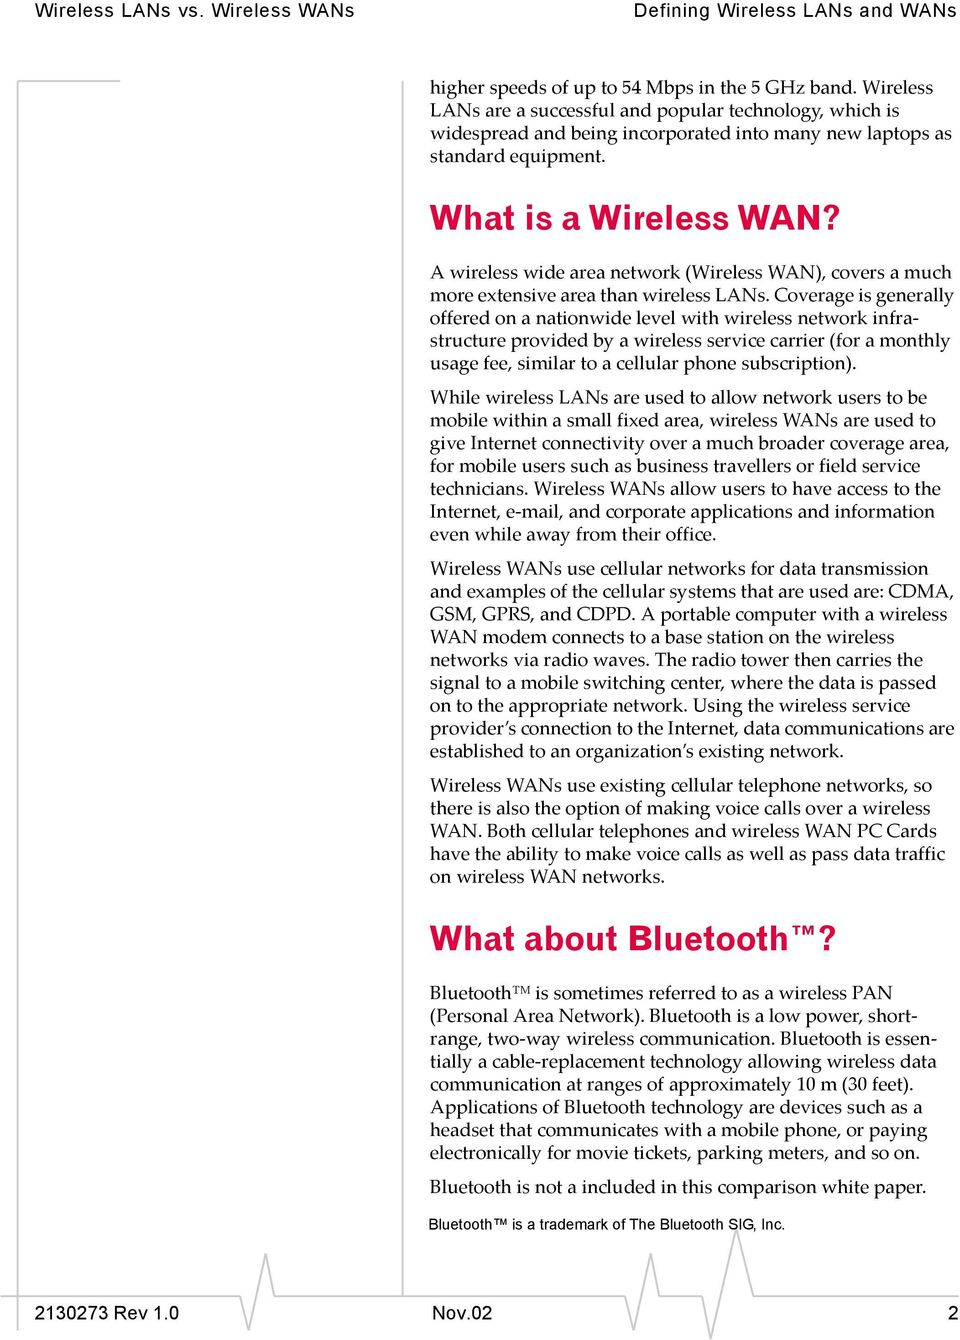 A wireless wide area network (Wireless WAN), covers a much more extensive area than wireless LANs.